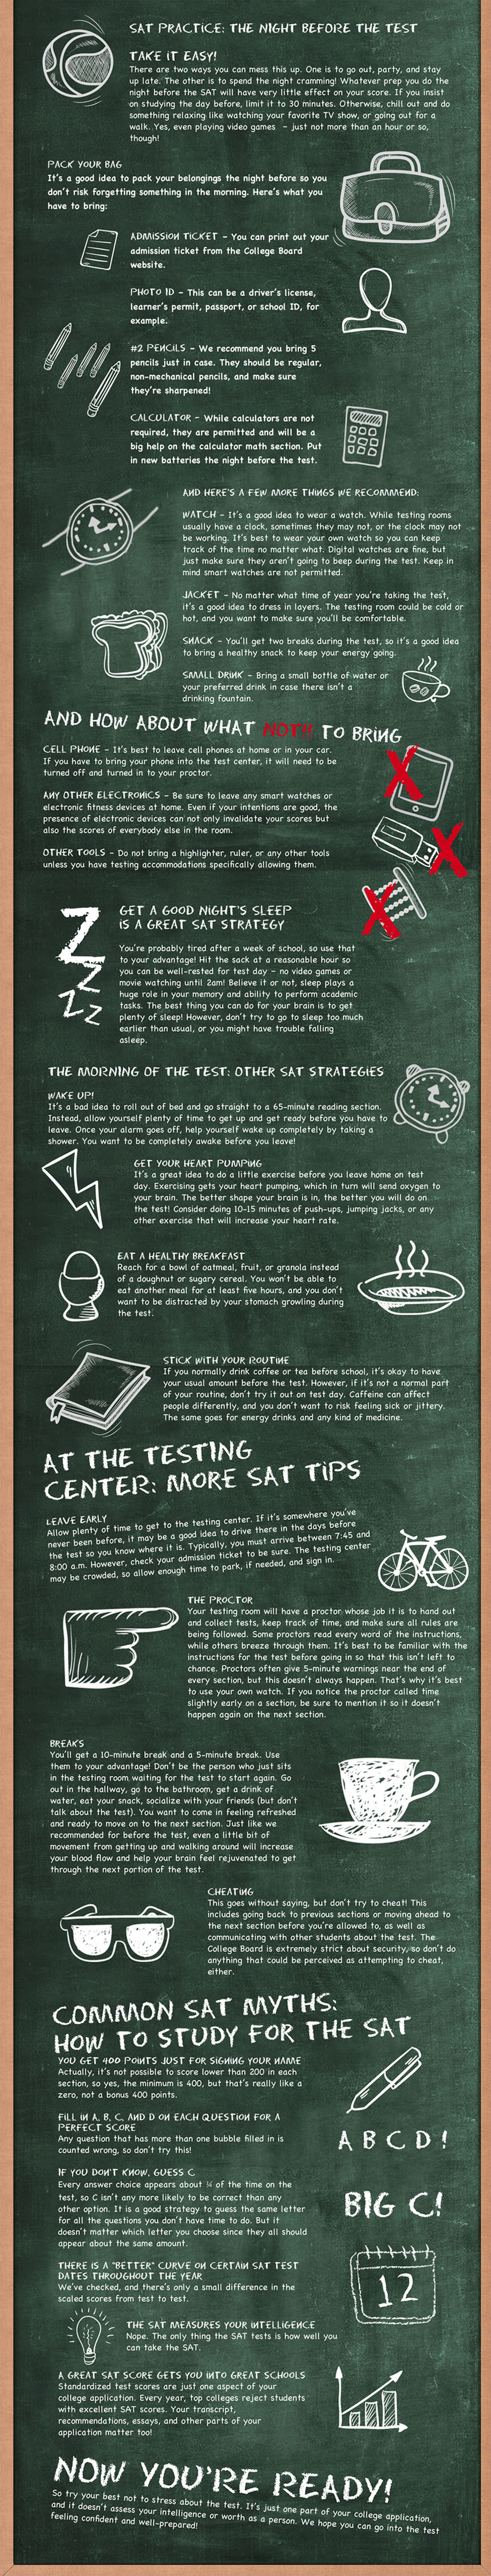 Last-Minute SAT Cram Tips | The Princeton Review